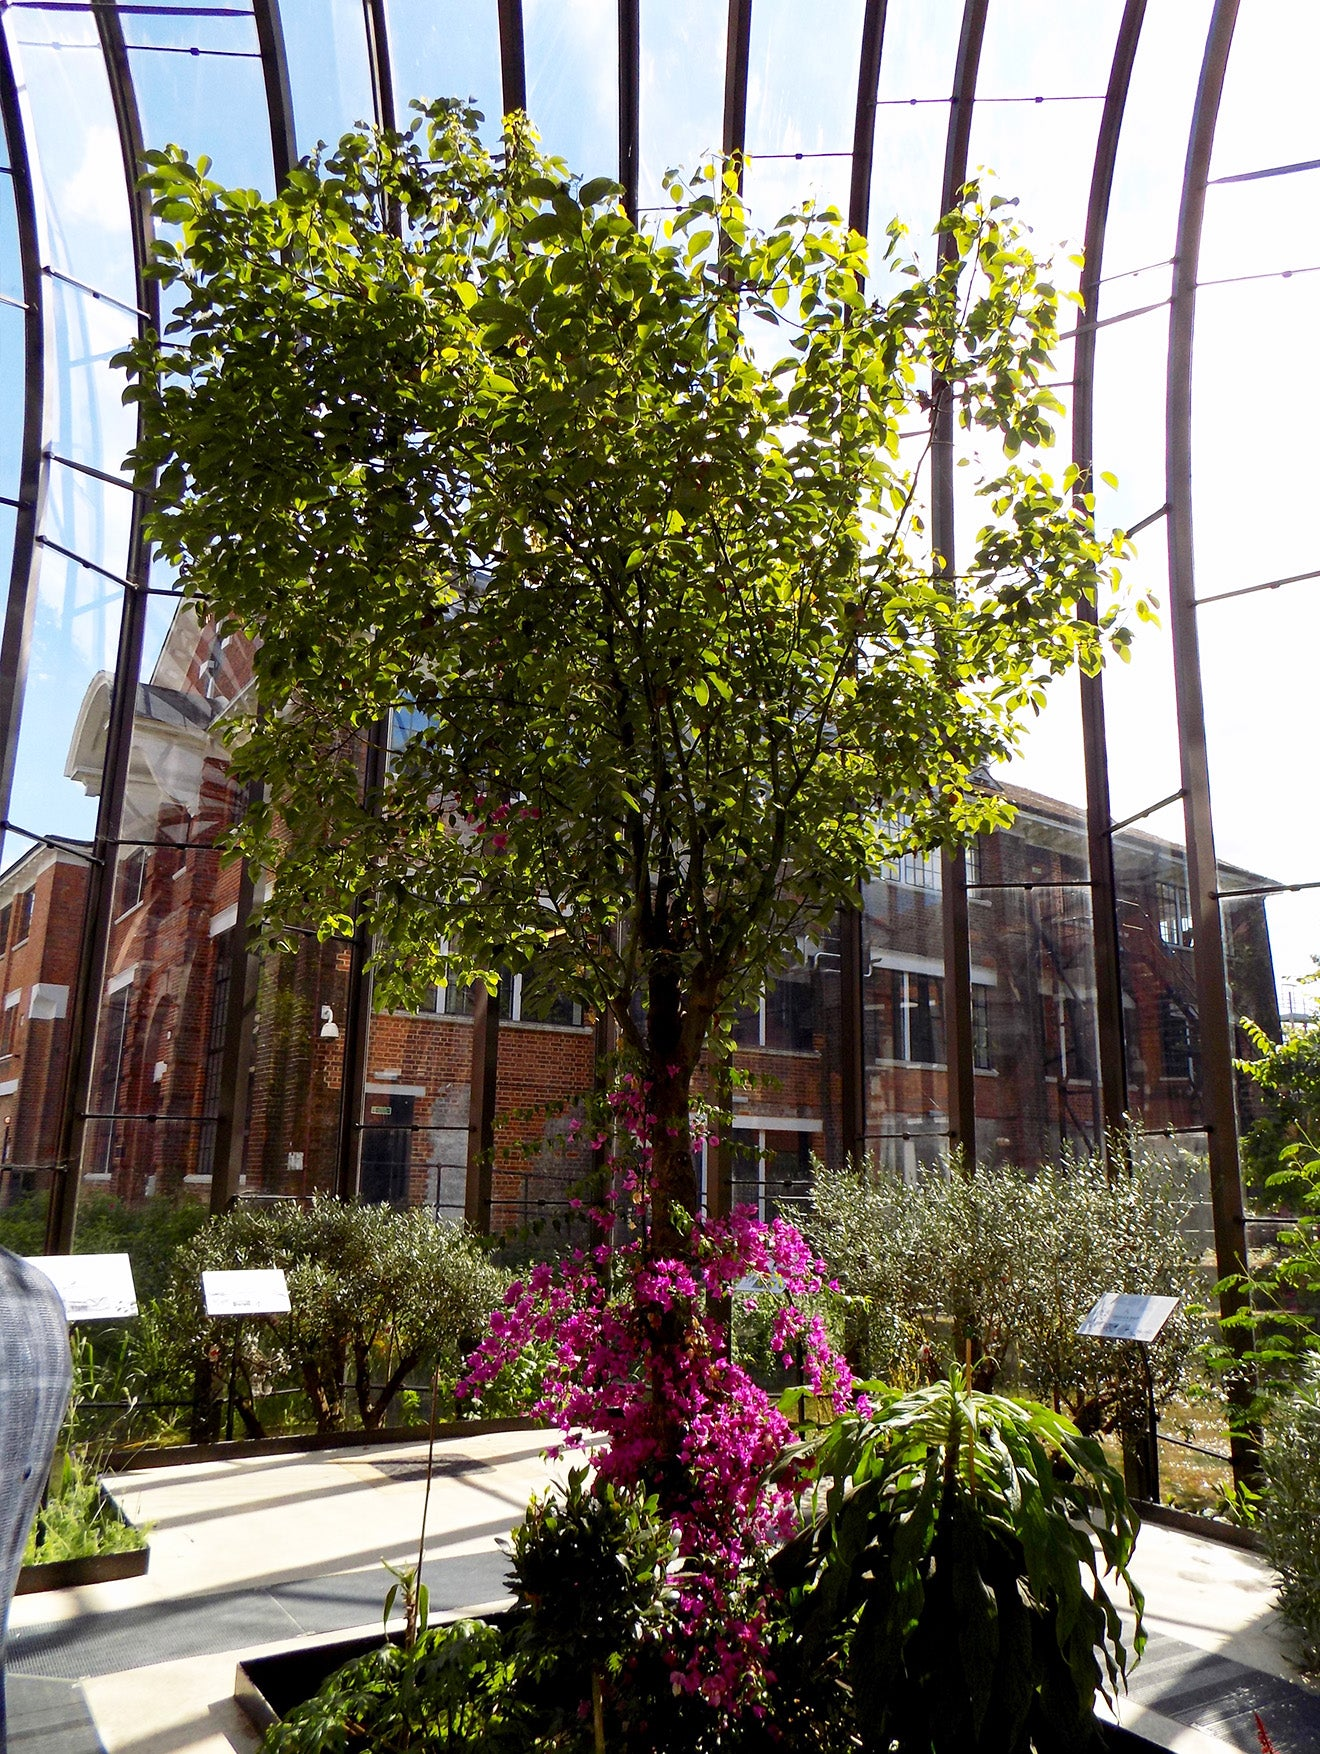 Beautiful modern glass architecture growing botanicals at the Bombay Sapphire gin distillery